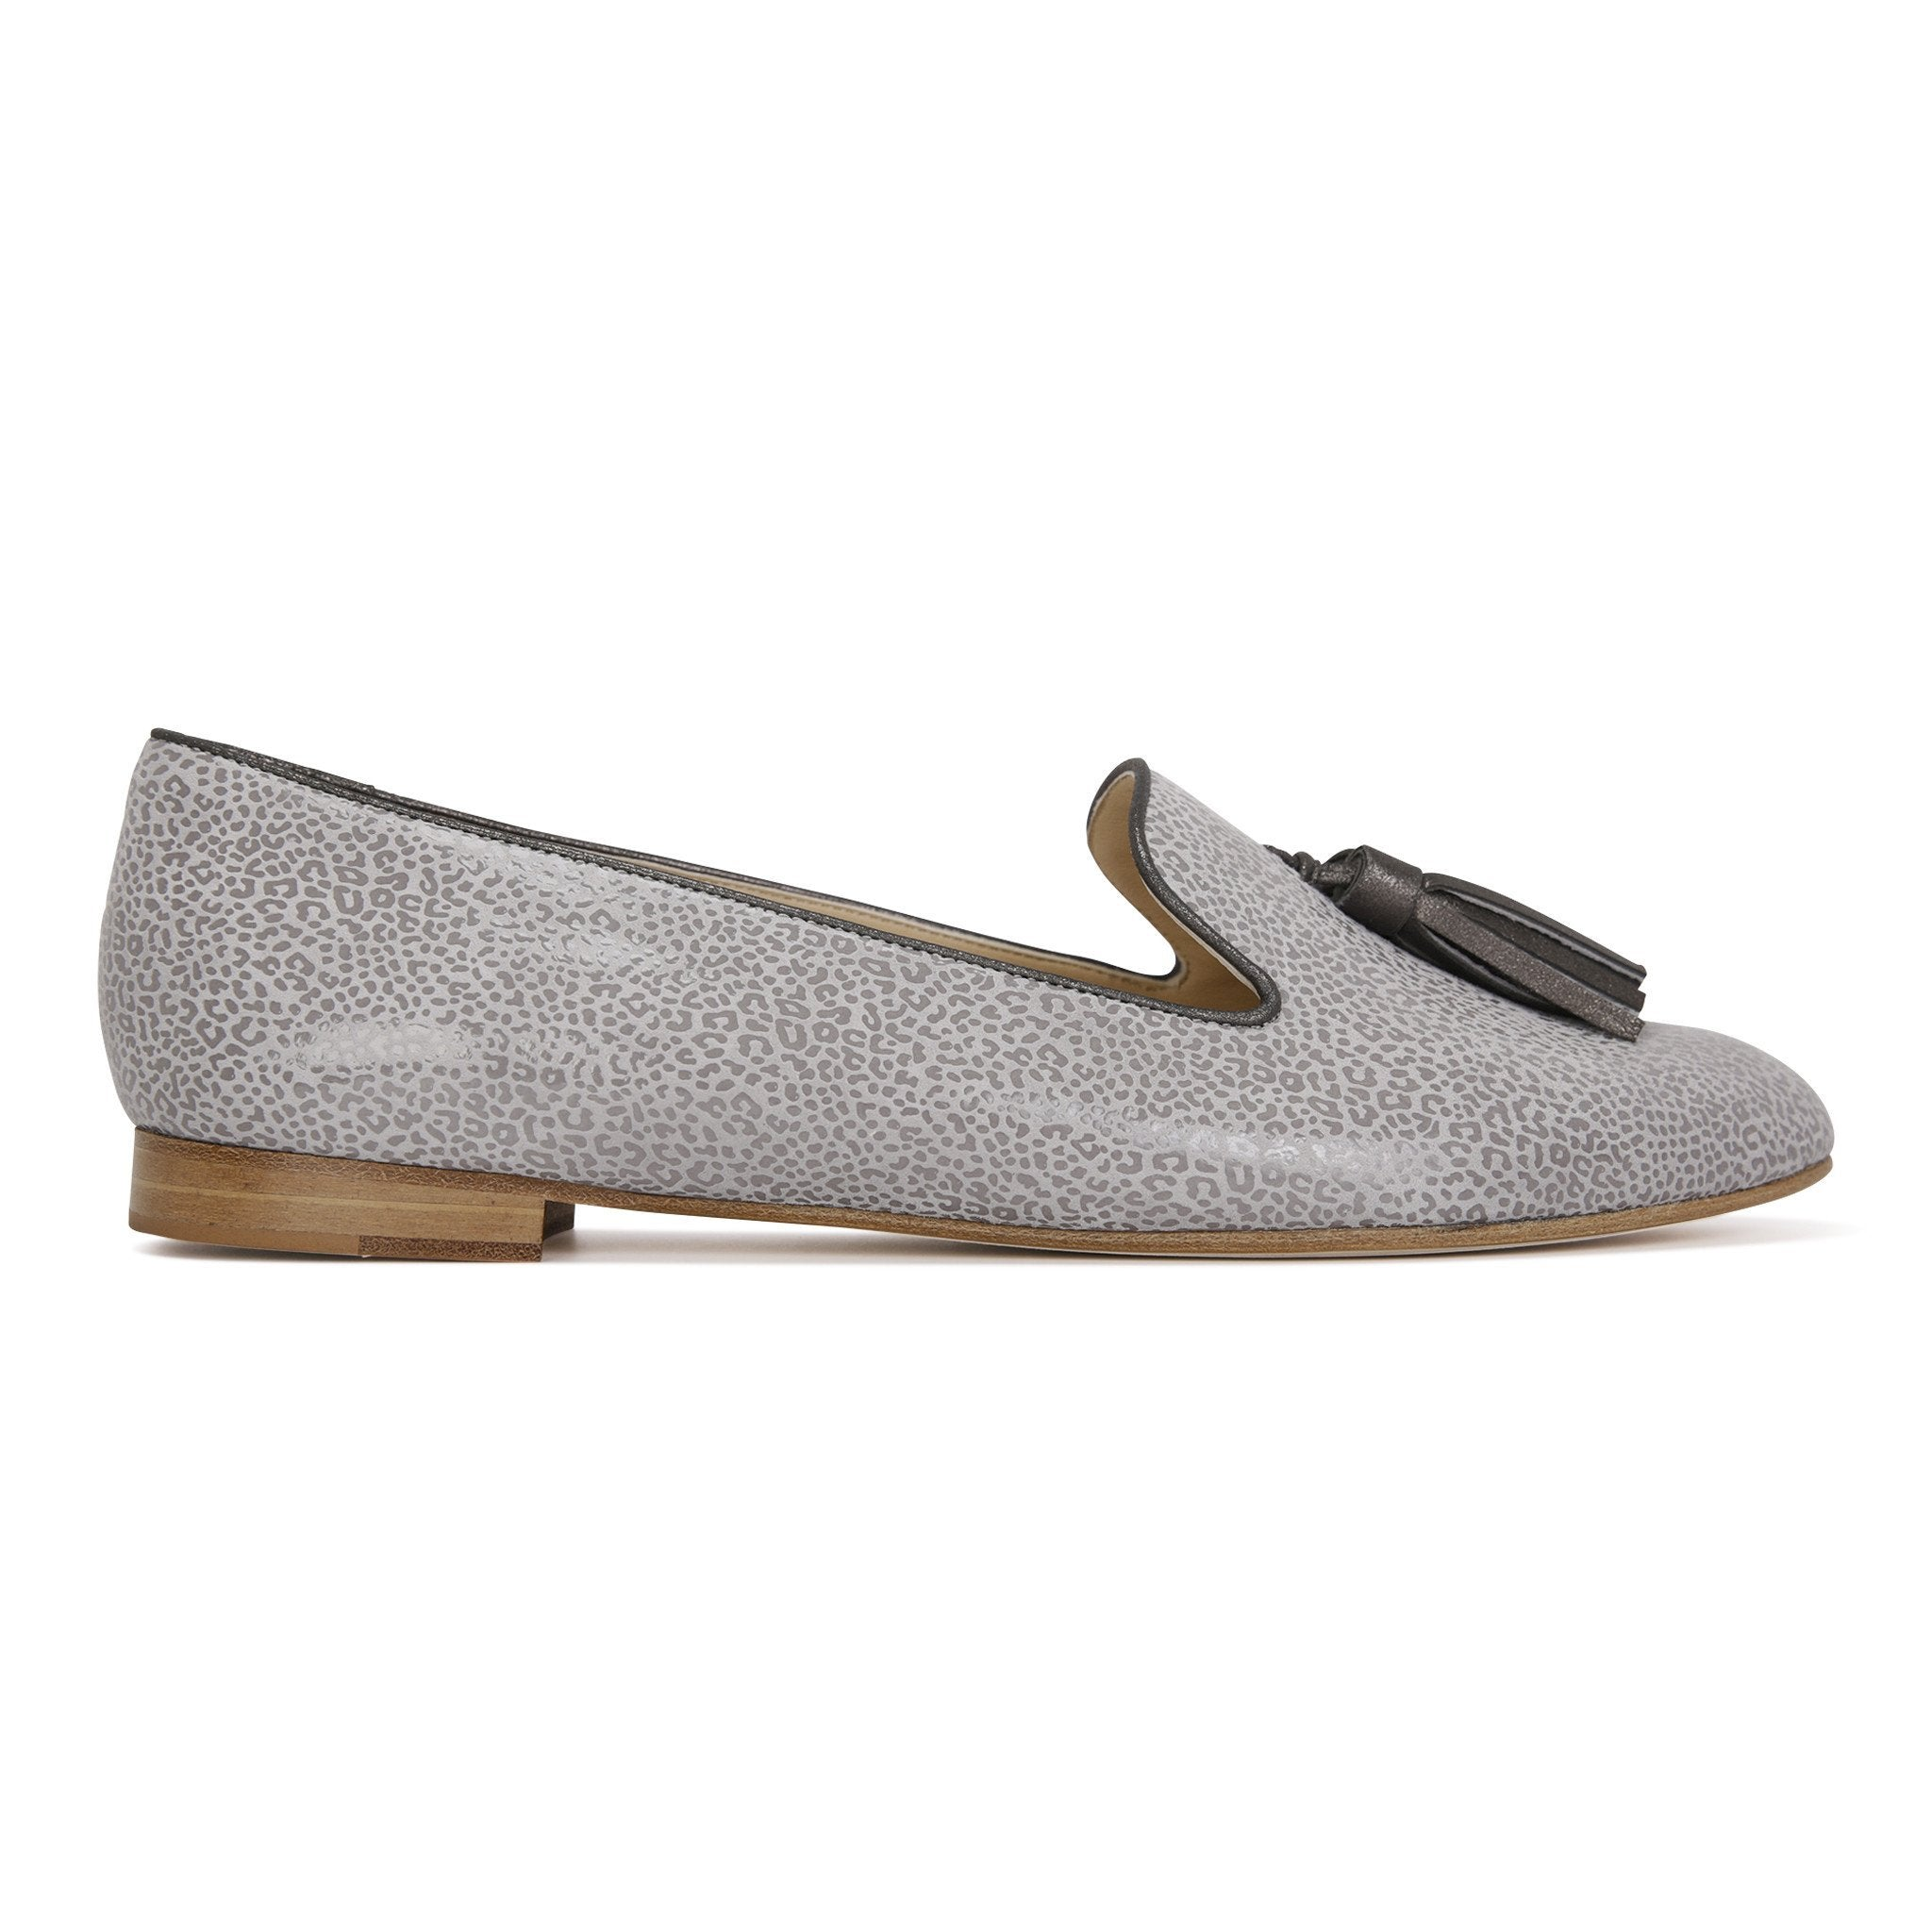 PARMA - Savannah Grigio + Burma Anthracite, VIAJIYU - Women's Hand Made Sustainable Luxury Shoes. Made in Italy. Made to Order.